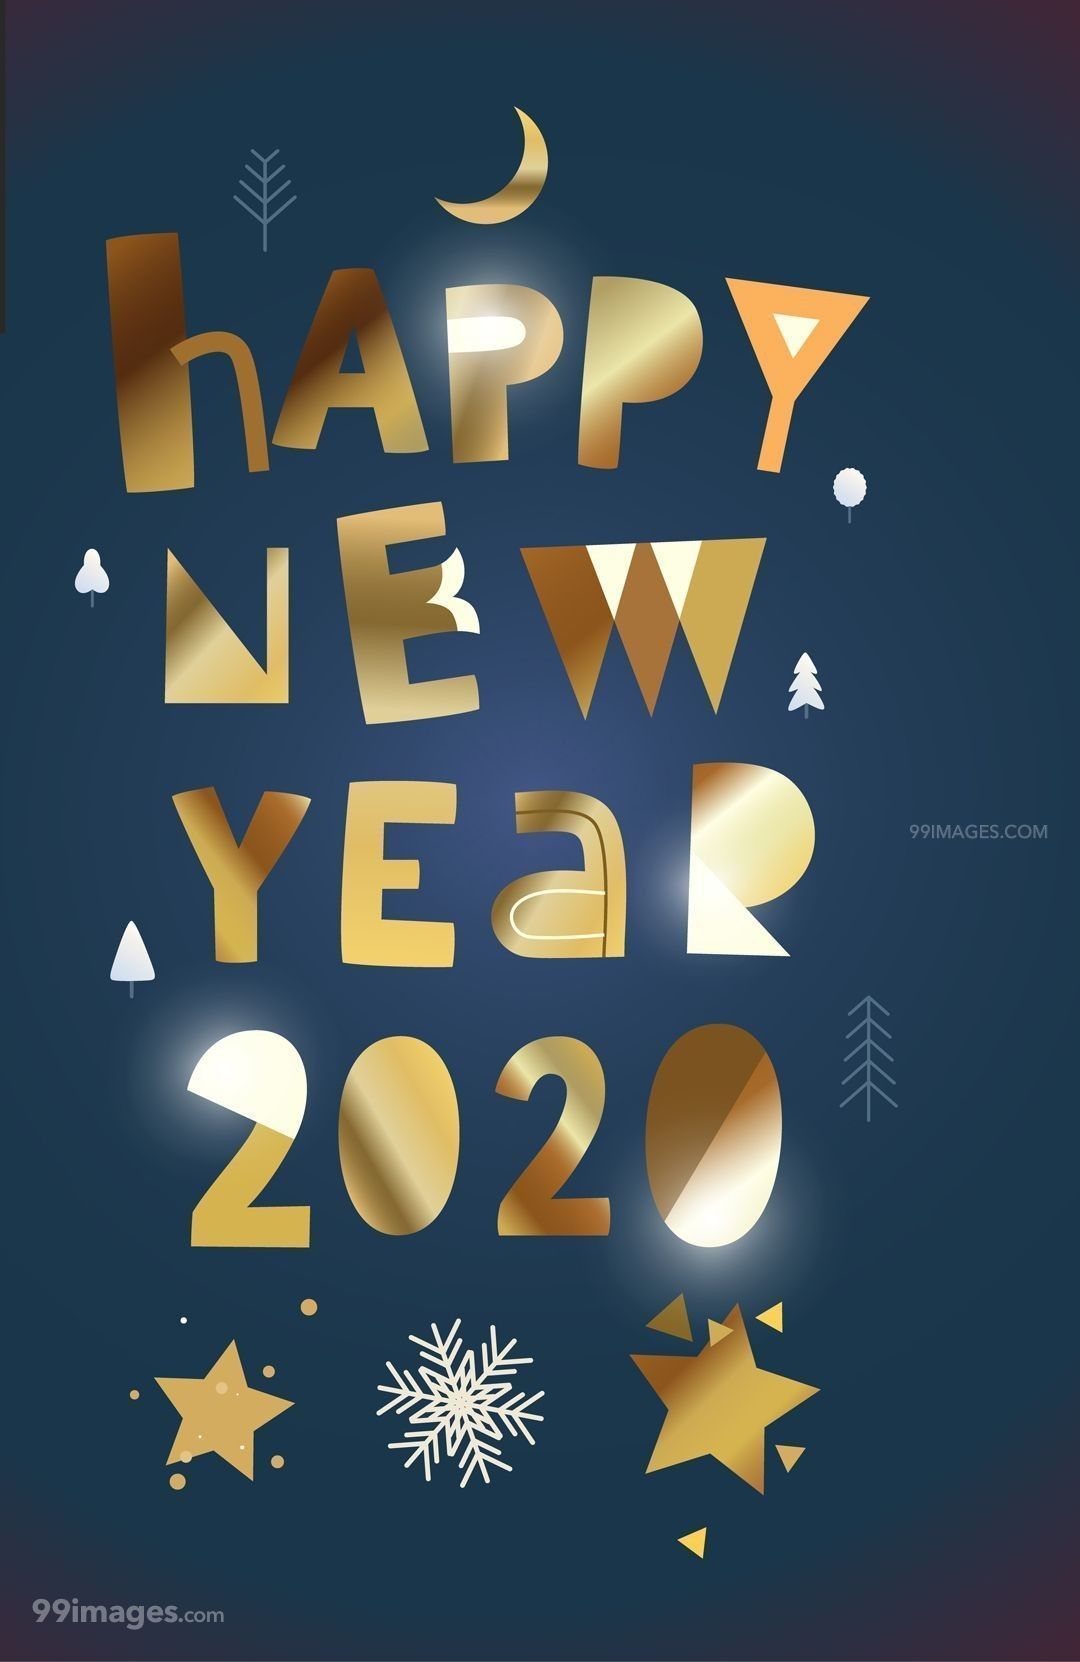 [100+] [1st January 2020] Happy New Year 2020 Wishes